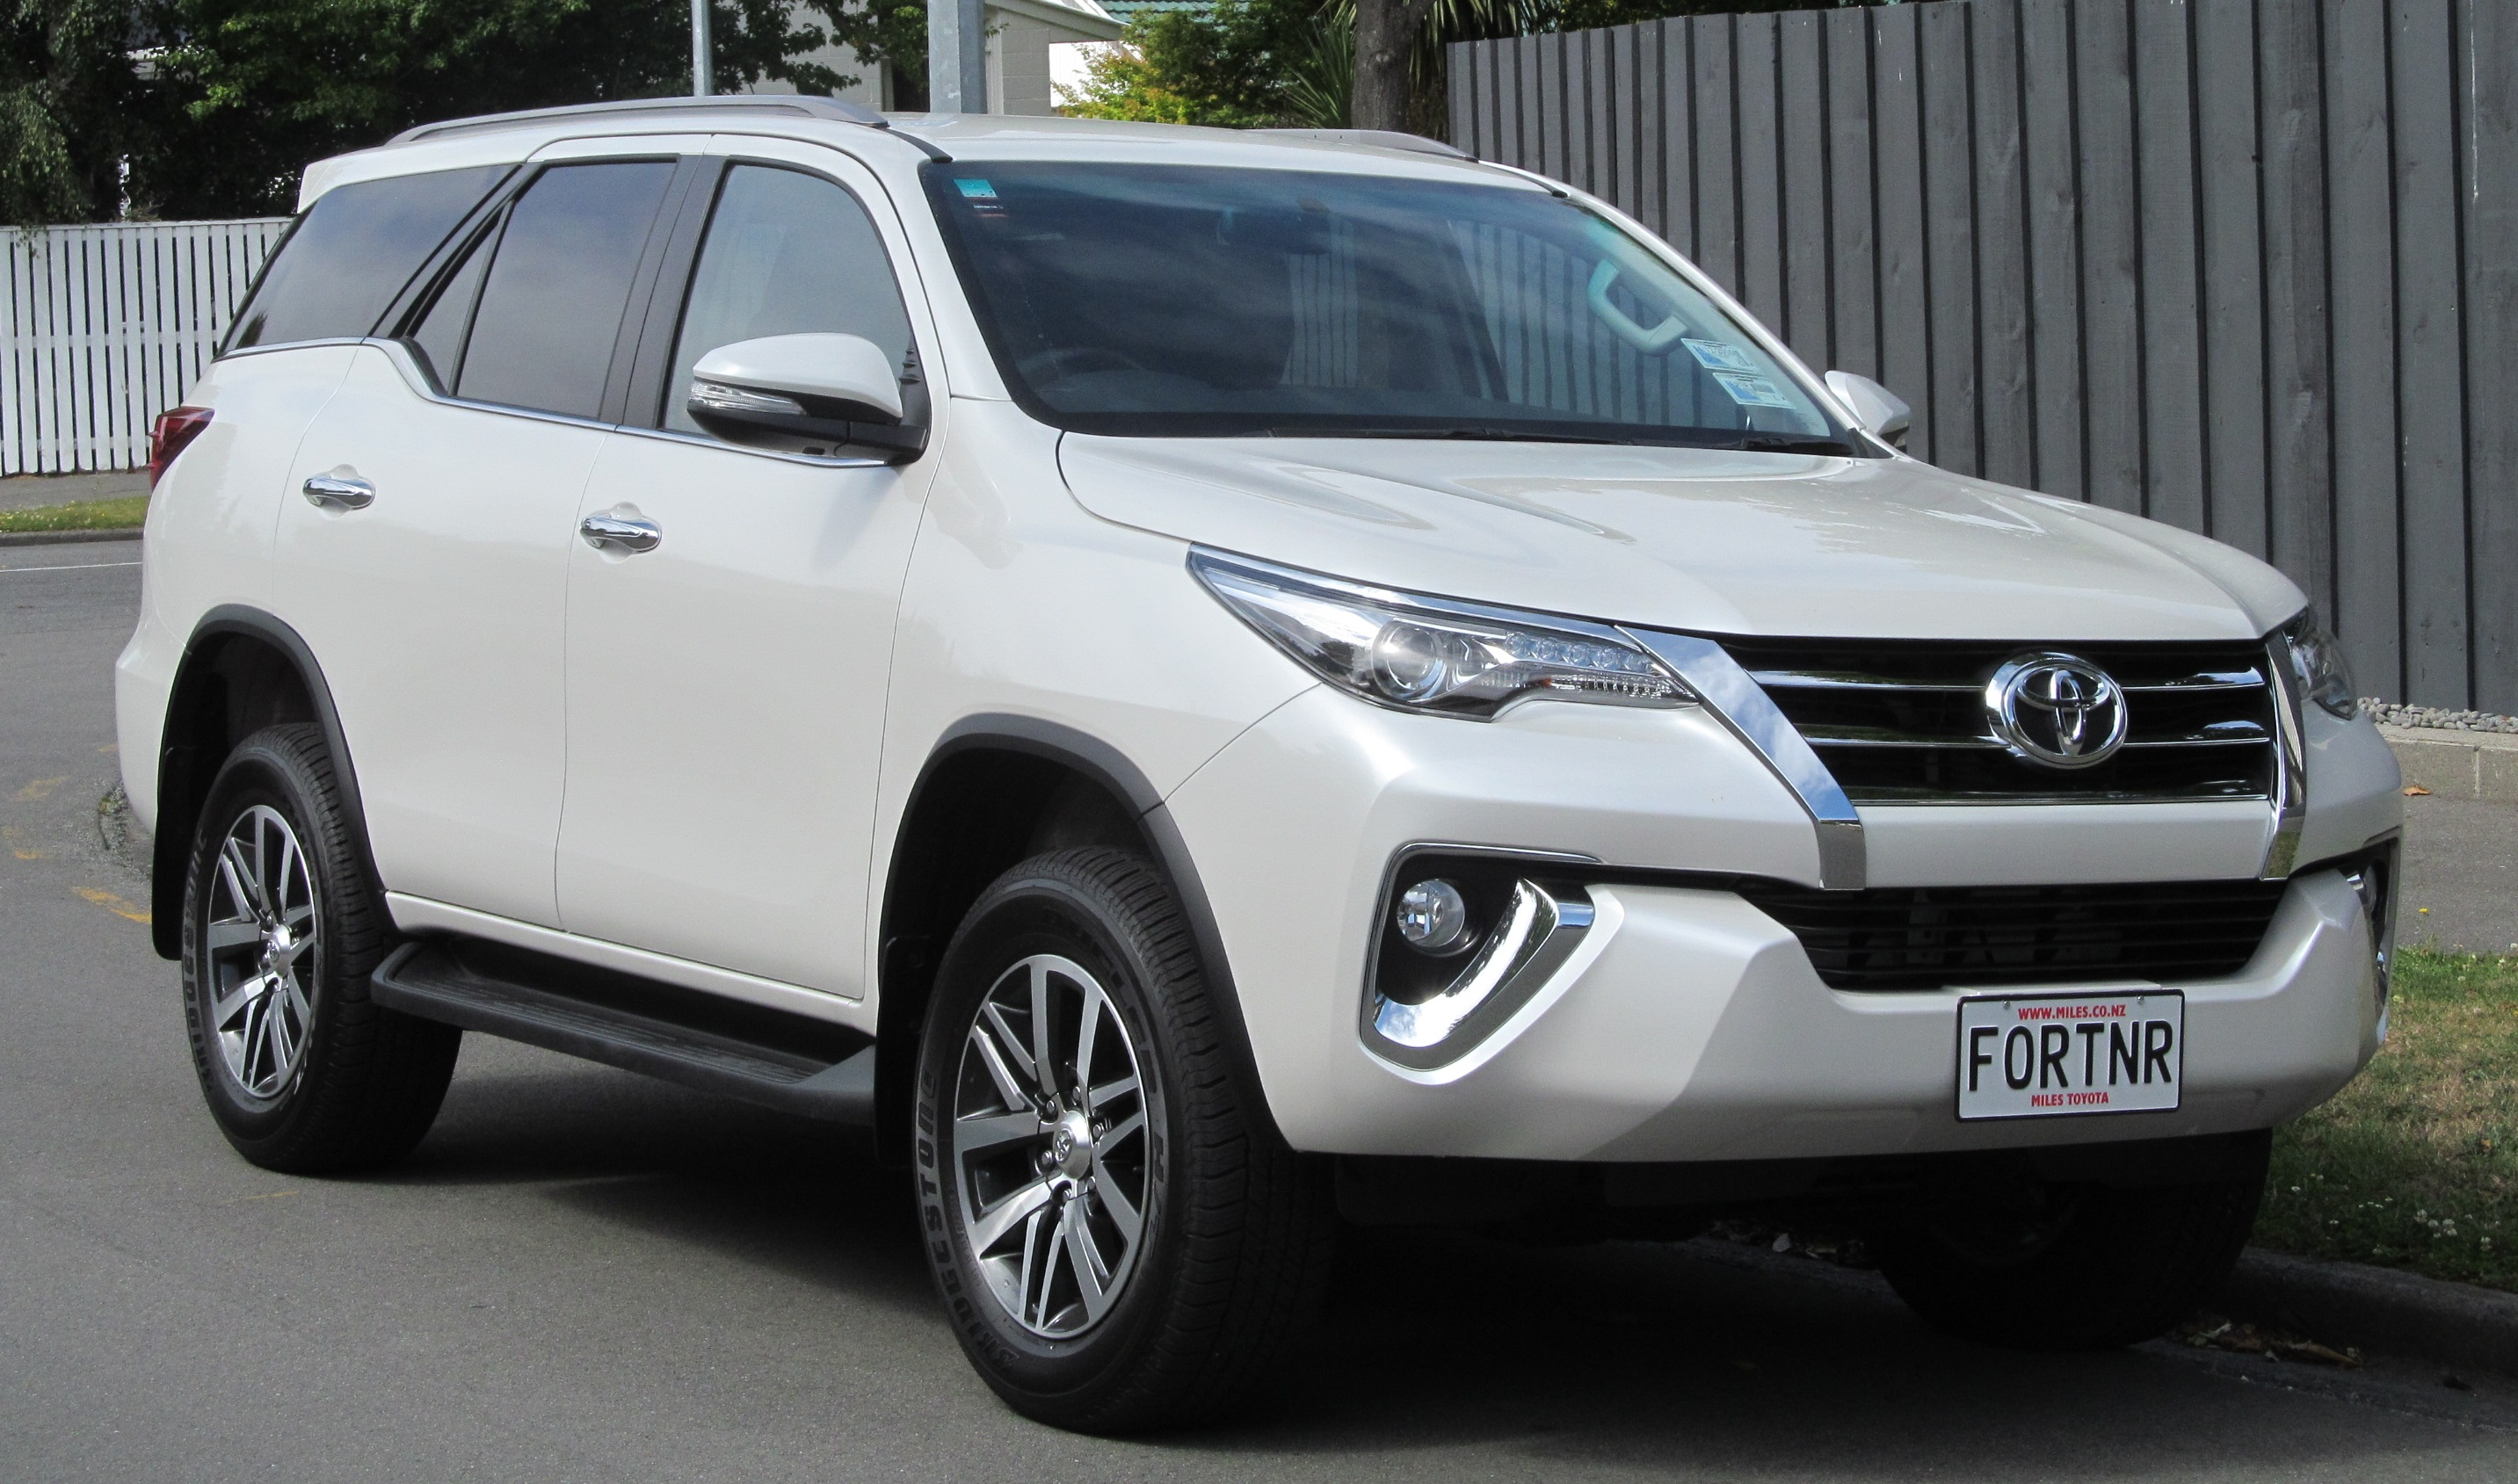 Toyota Fortuner - Wikipedia